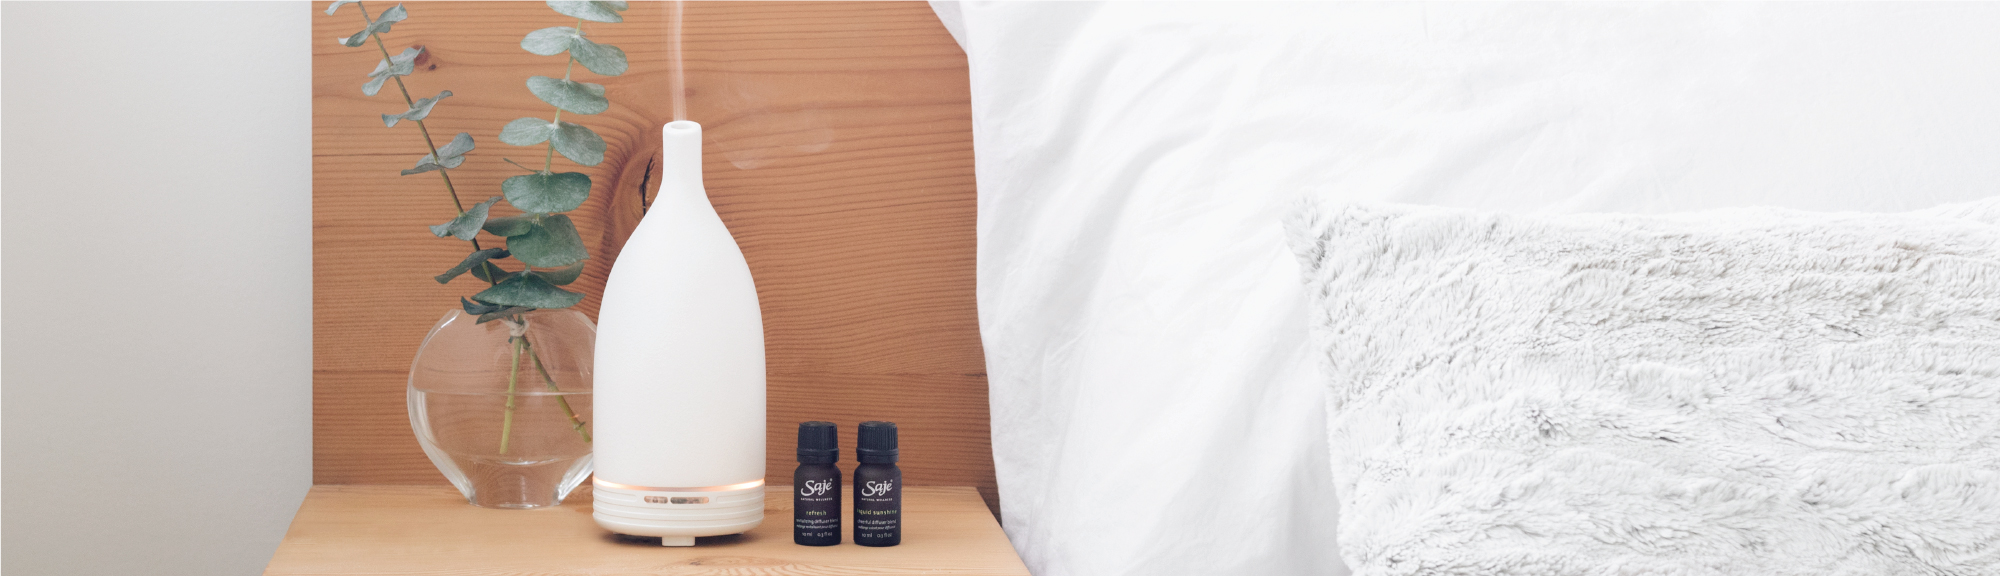 How to sleep better using essential oils.